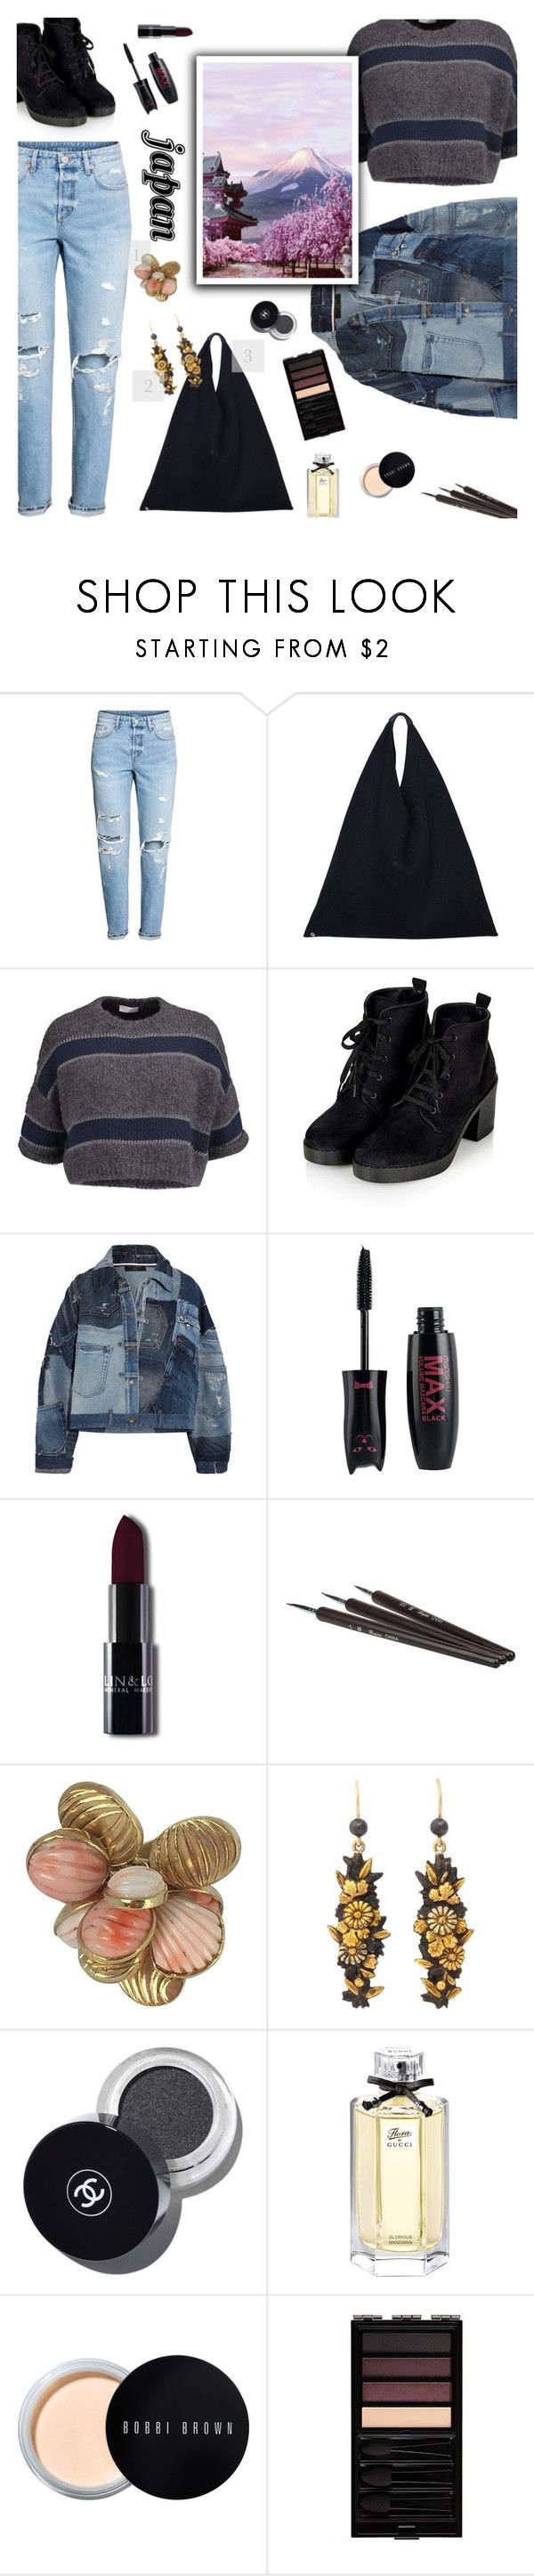 """Japan"" by janemorguedoe ❤ liked on Polyvore featuring MM6 Maison Margiela, Brunello Cucinelli, Dolce&Gabbana, Fuji, Giulia Colussi, Bobbi Brown Cosmetics and Serge Lutens"